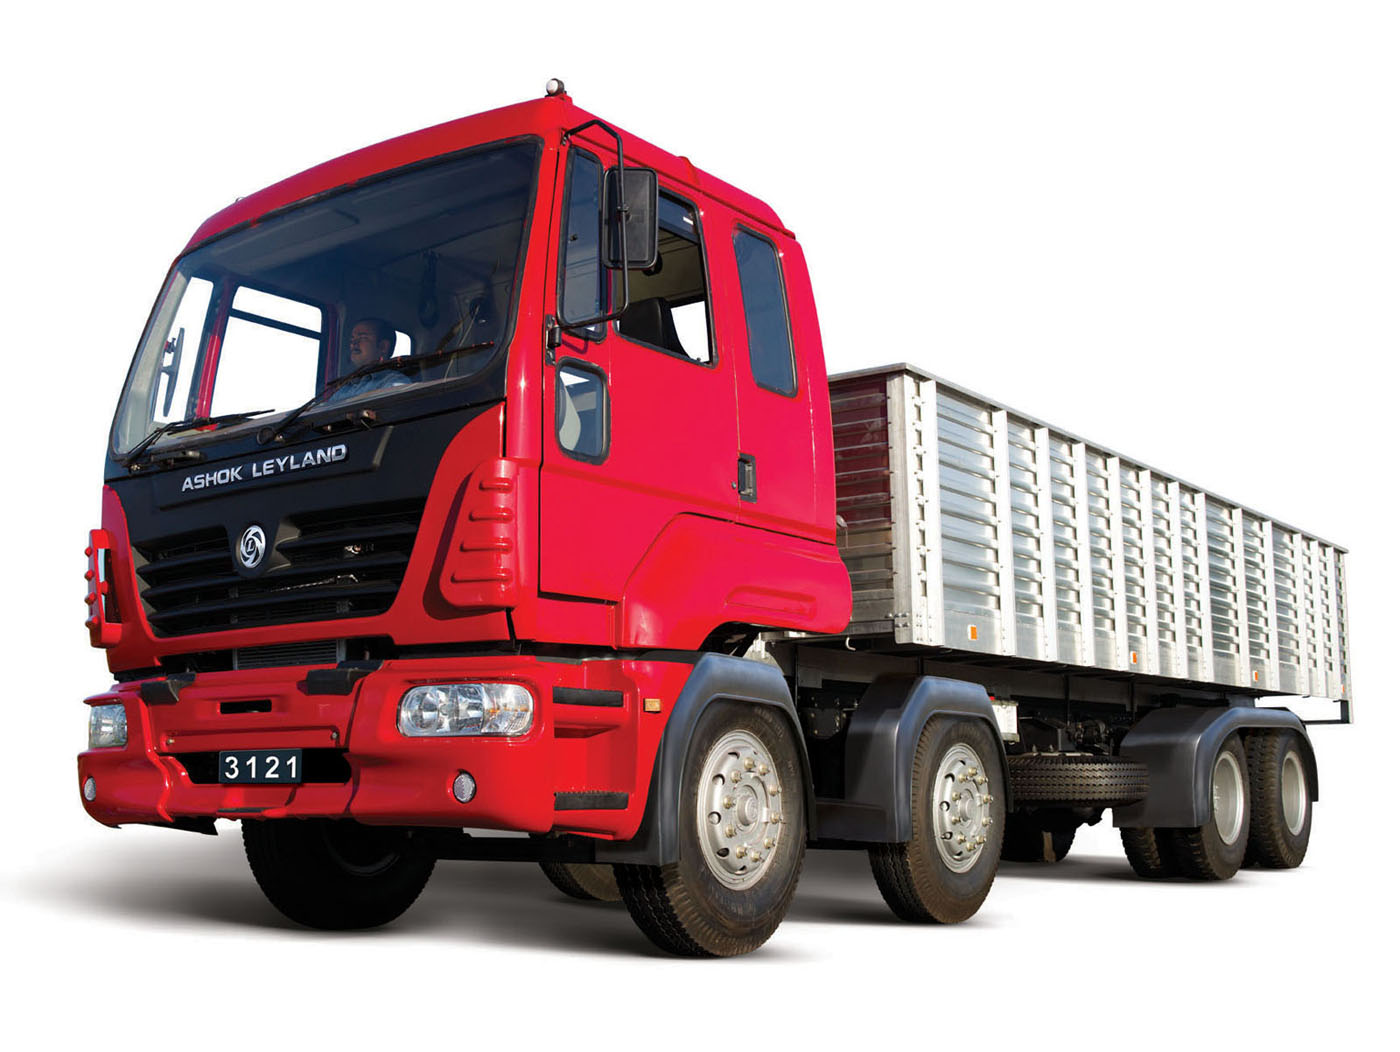 Truck pictures Leyland images